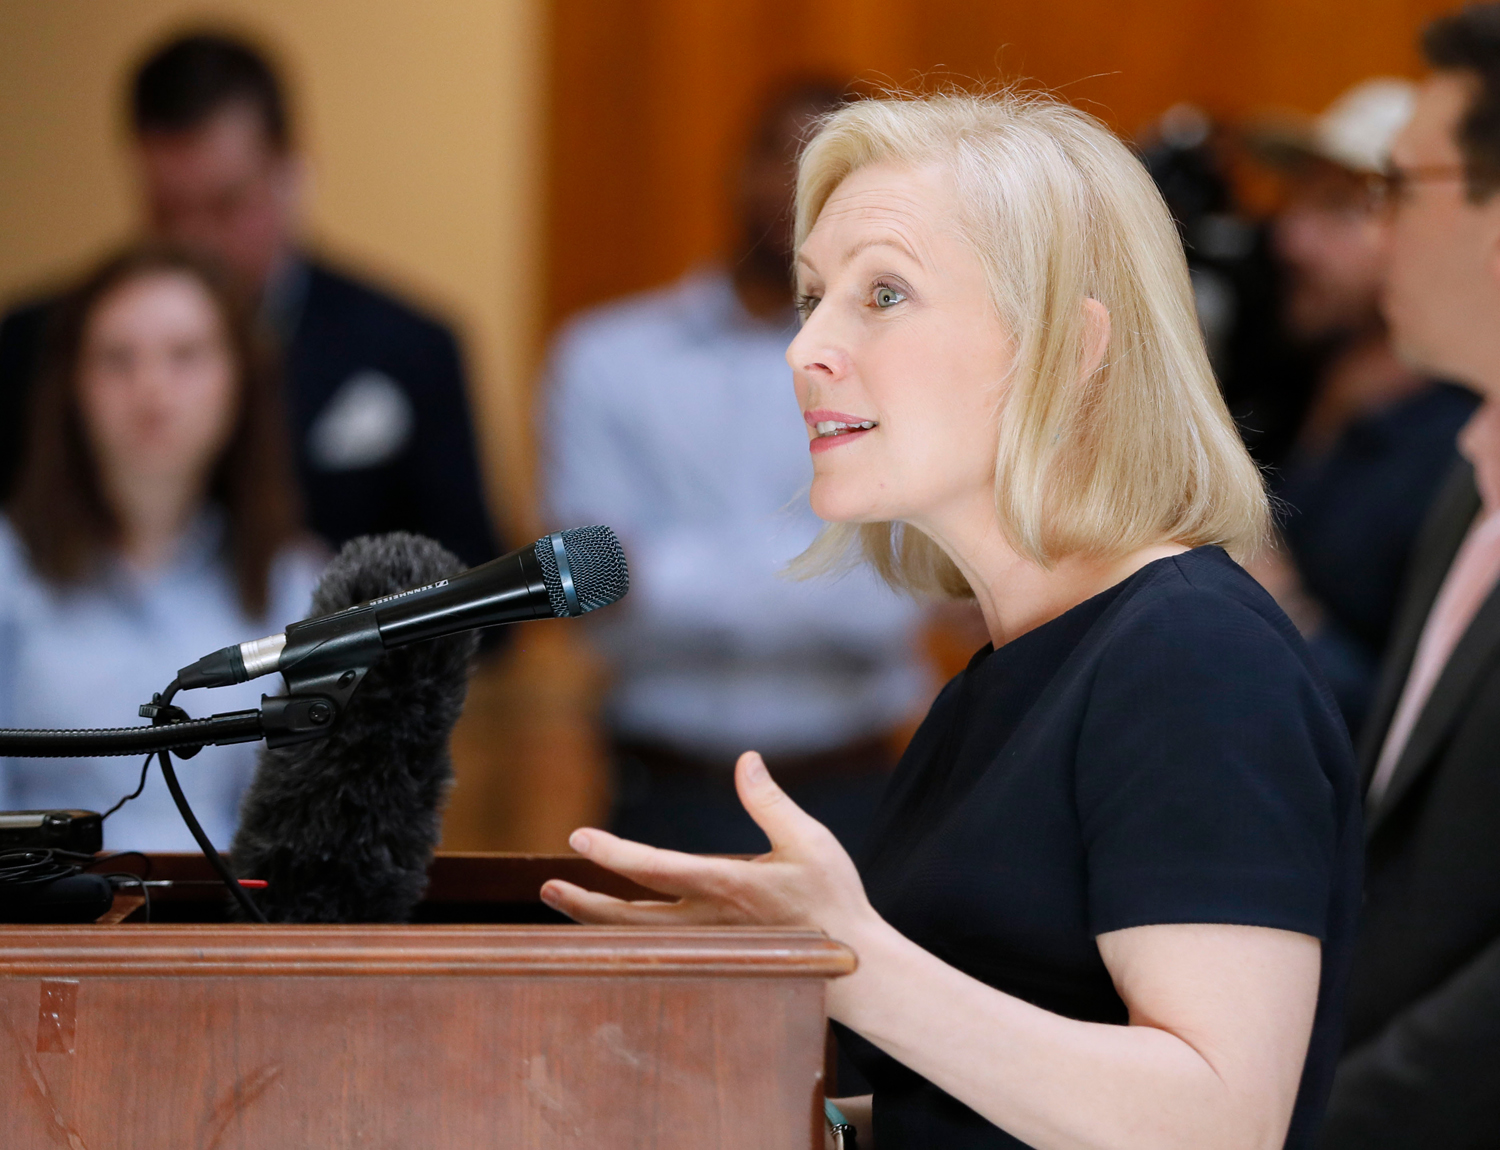 Presidential candidate Sen. Kirsten Gillibrand, D-N.Y., speaks at a round table discussion and press conference at the Georgia state capitol on May 16 to discuss abortion bans in Georgia and across the country. Georgia was the fourth state this year to pass anti-abortion